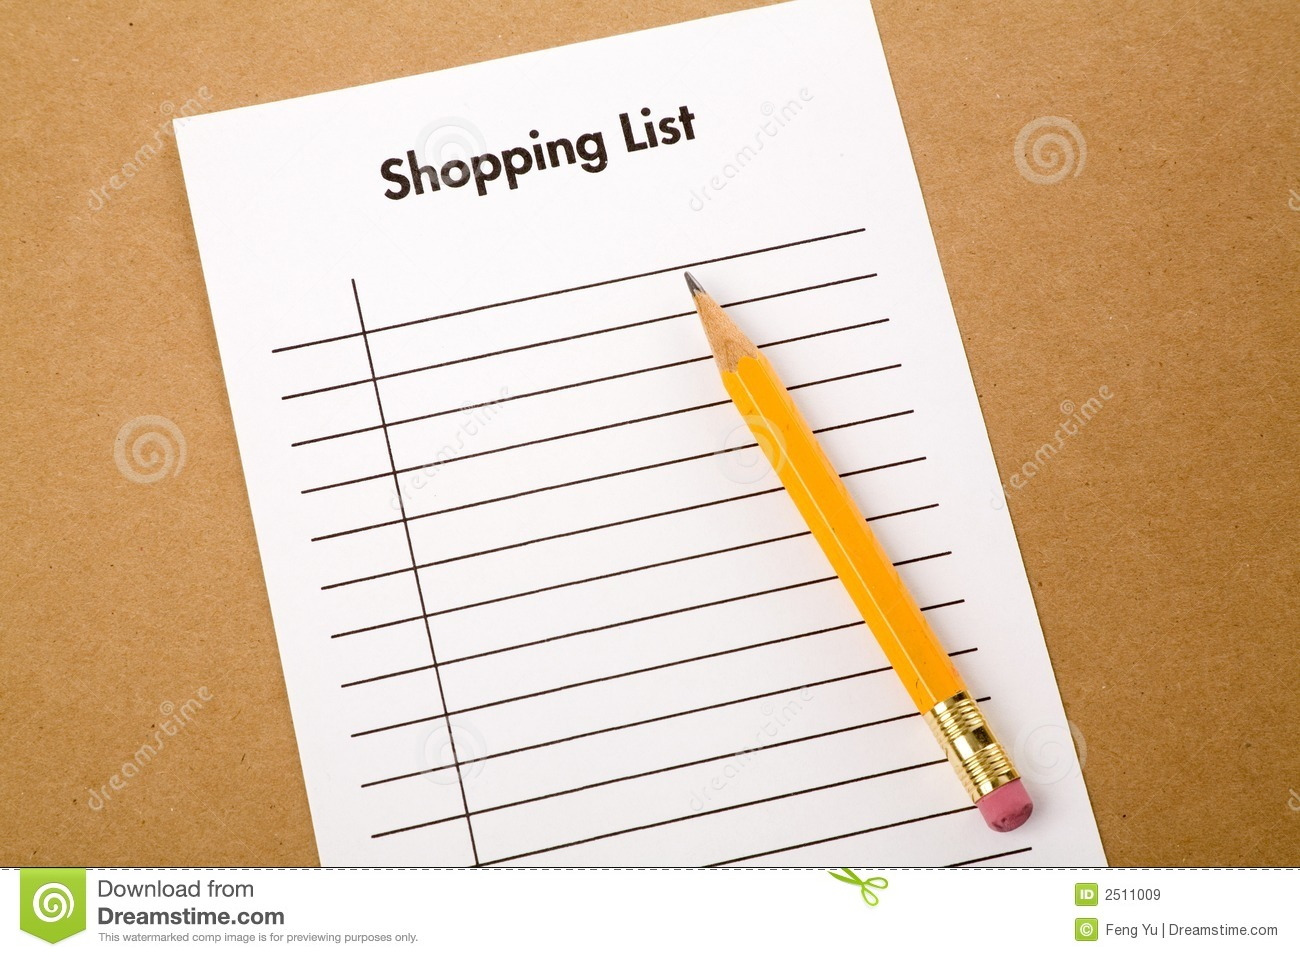 Shopping List Royalty Free Stock Images - Image: 2511009